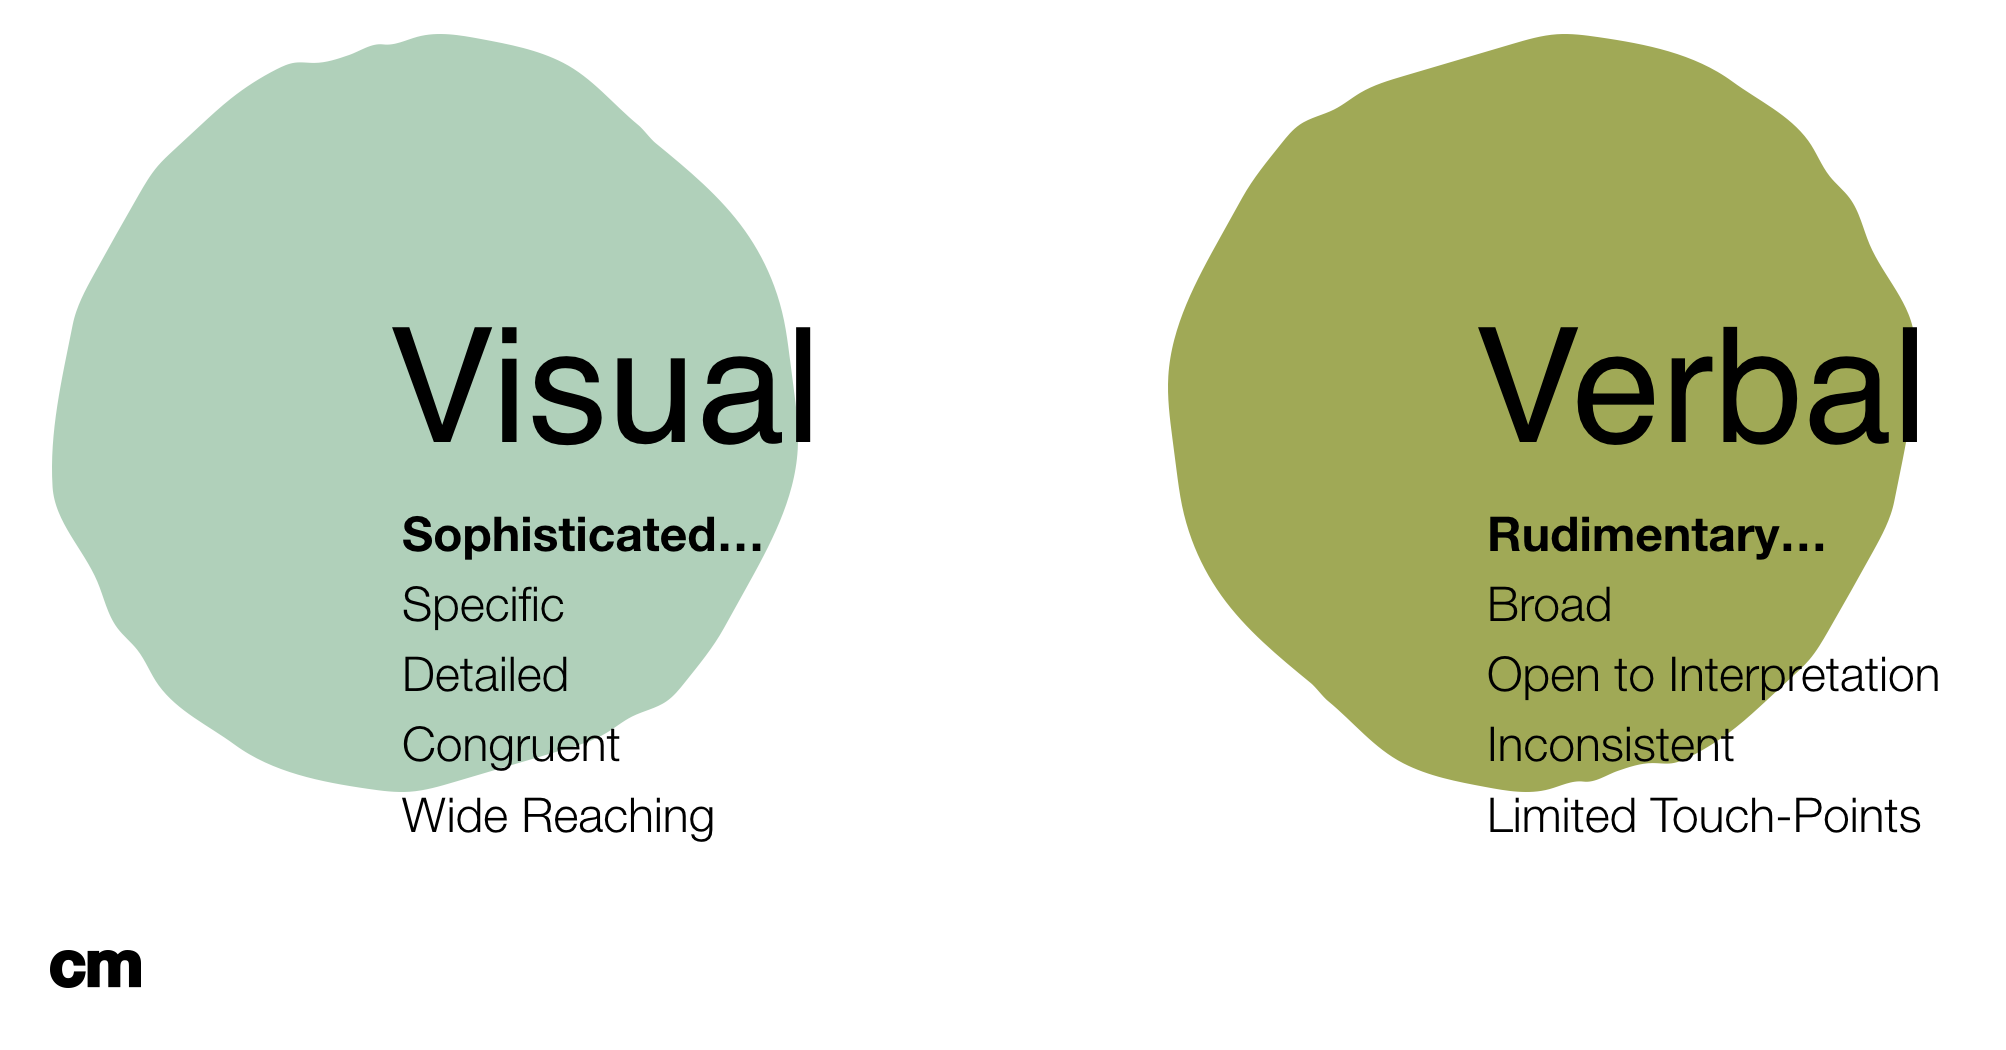 Visual vs Verbal Branding